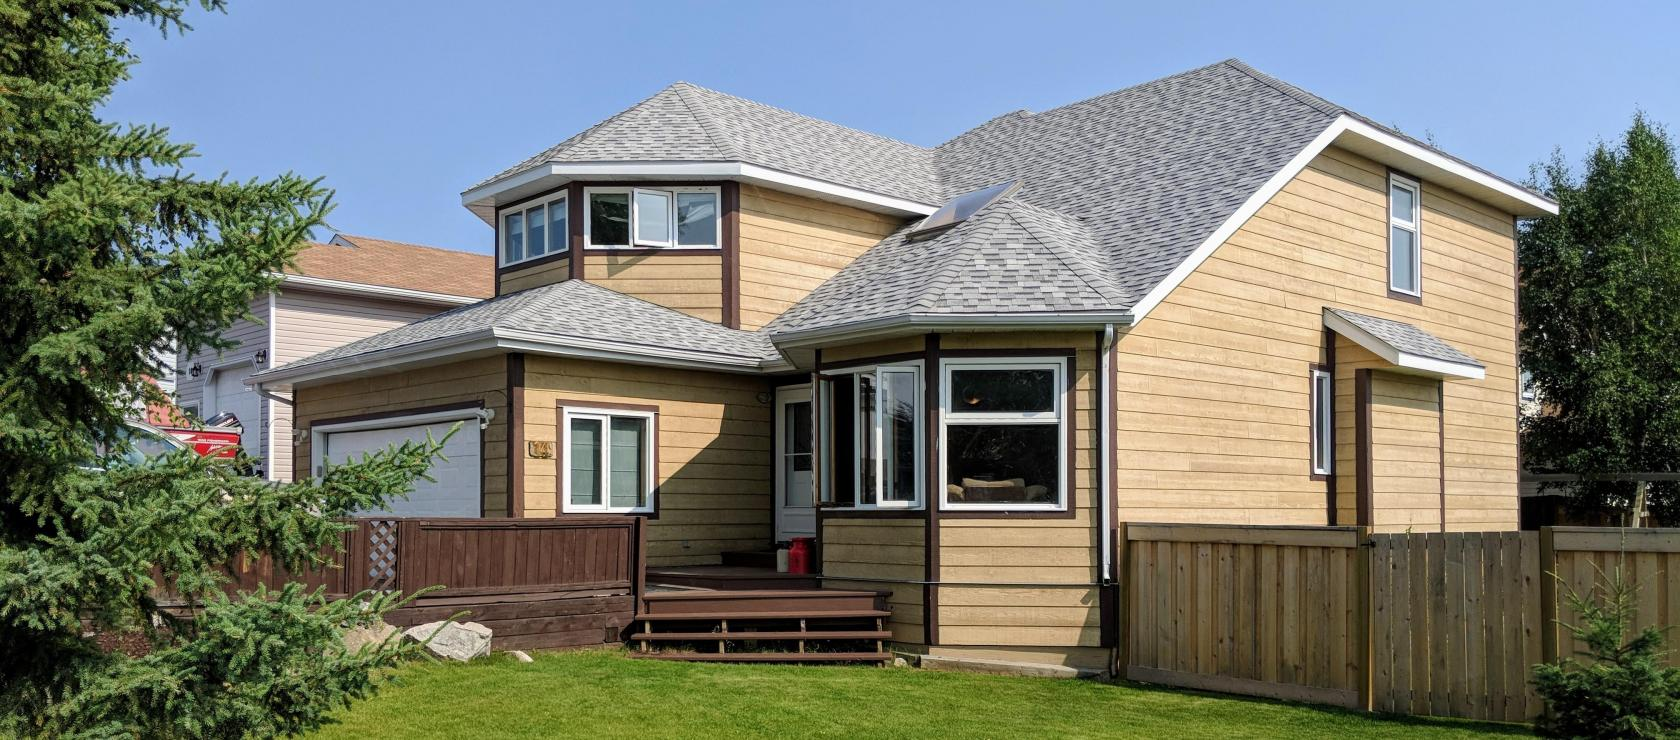 14 Stevens Crescent, Range Lake, Yellowknife 2